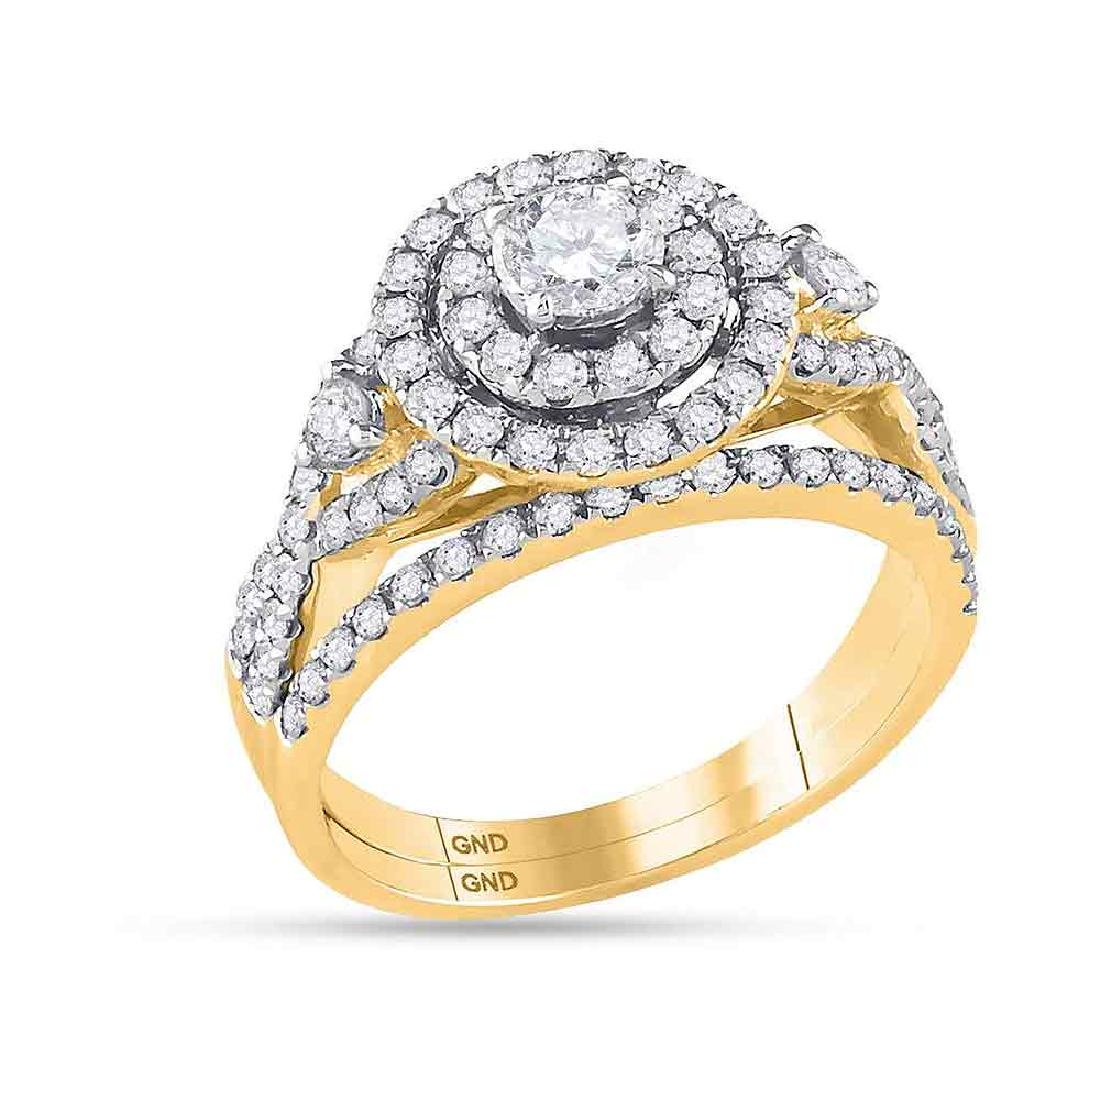 1.49 CTW Diamond Halo Bridal Engagement Ring 14KT